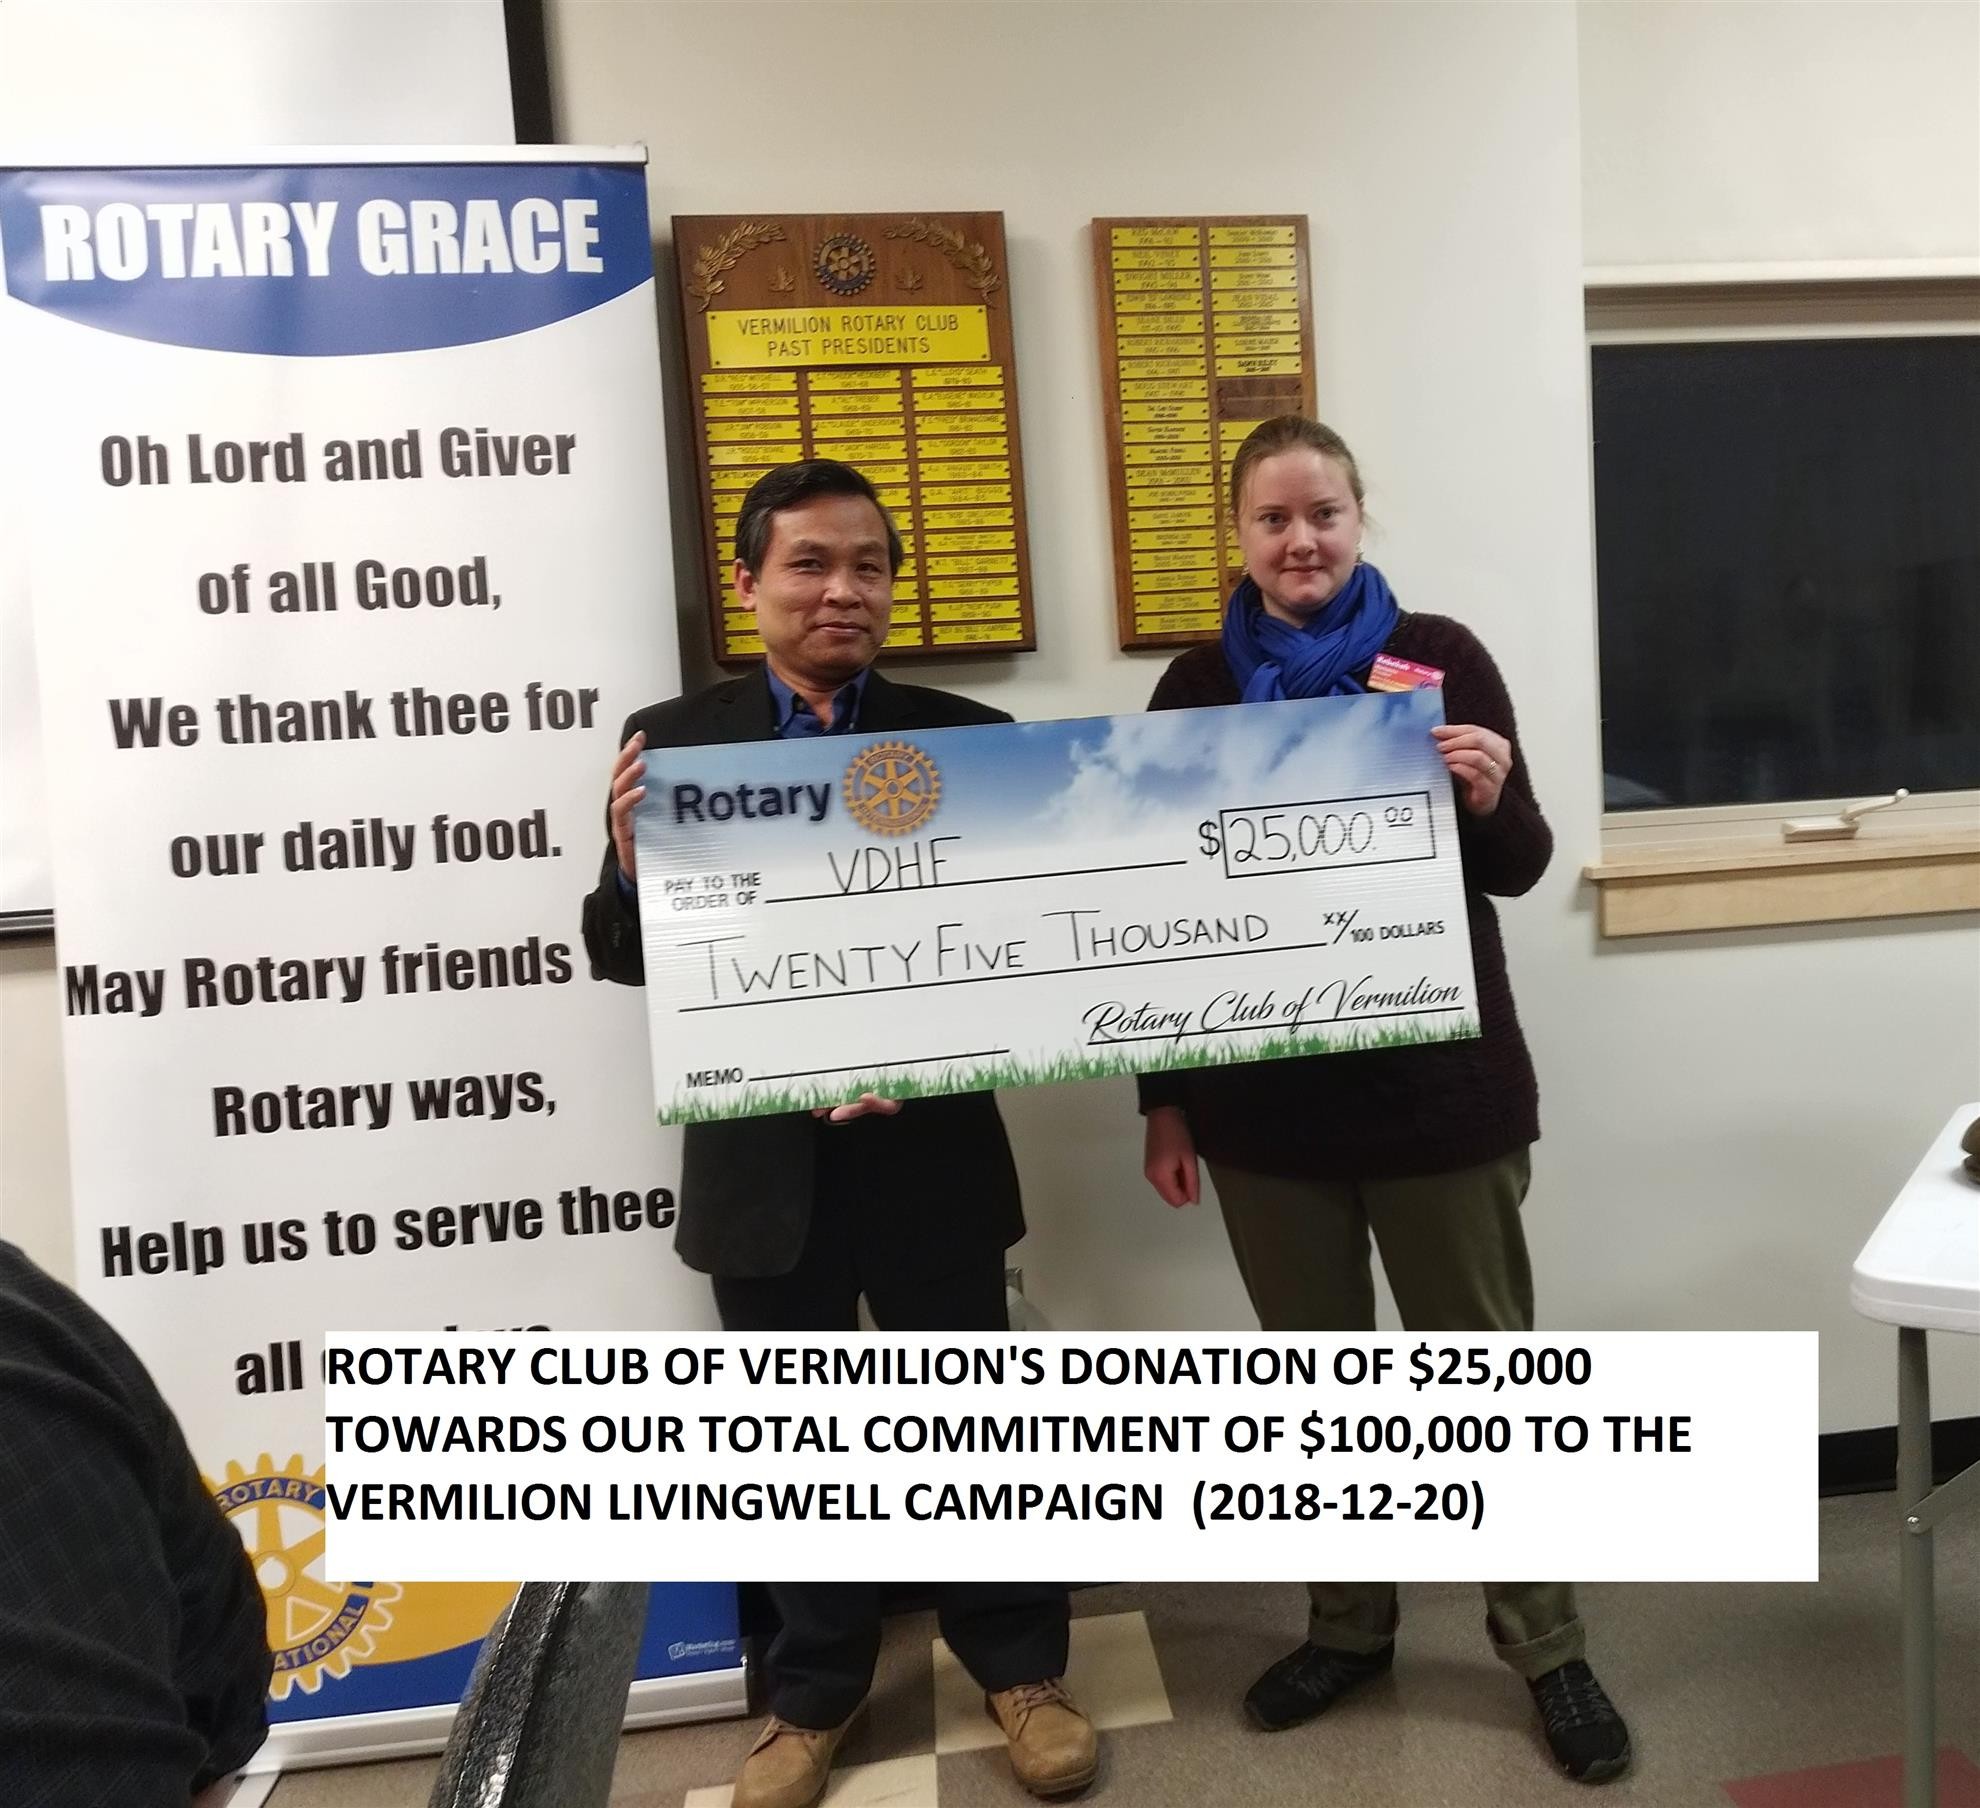 2018-12-20 Donation to Living Well Campaign   Rotary Club of Vermilion